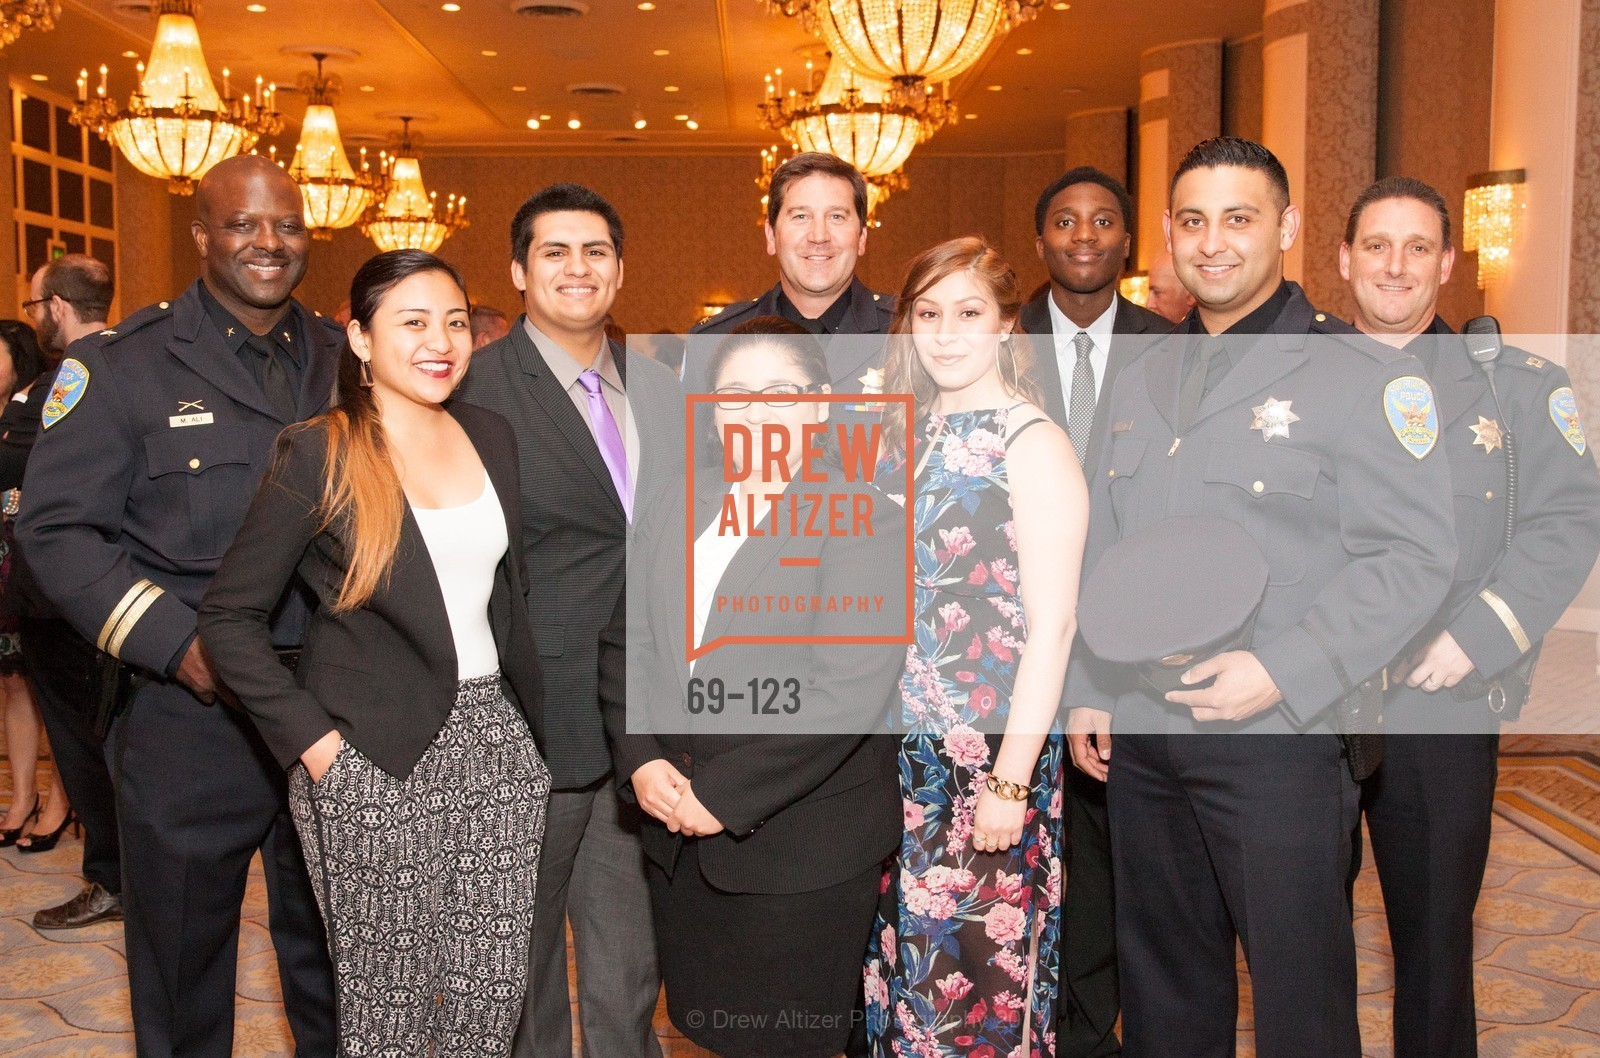 Mikail Ali, Aeris Velasco, Joe Armijo, Carmen Sosa, Rob O'Sullivan, Khari Brown, Yossef Azim, Greg McEachern, 2015 Boys and Girls Club Annual Gala, The Fairmont San Francisco. 950 Mason St, May 20th, 2015,Drew Altizer, Drew Altizer Photography, full-service agency, private events, San Francisco photographer, photographer california